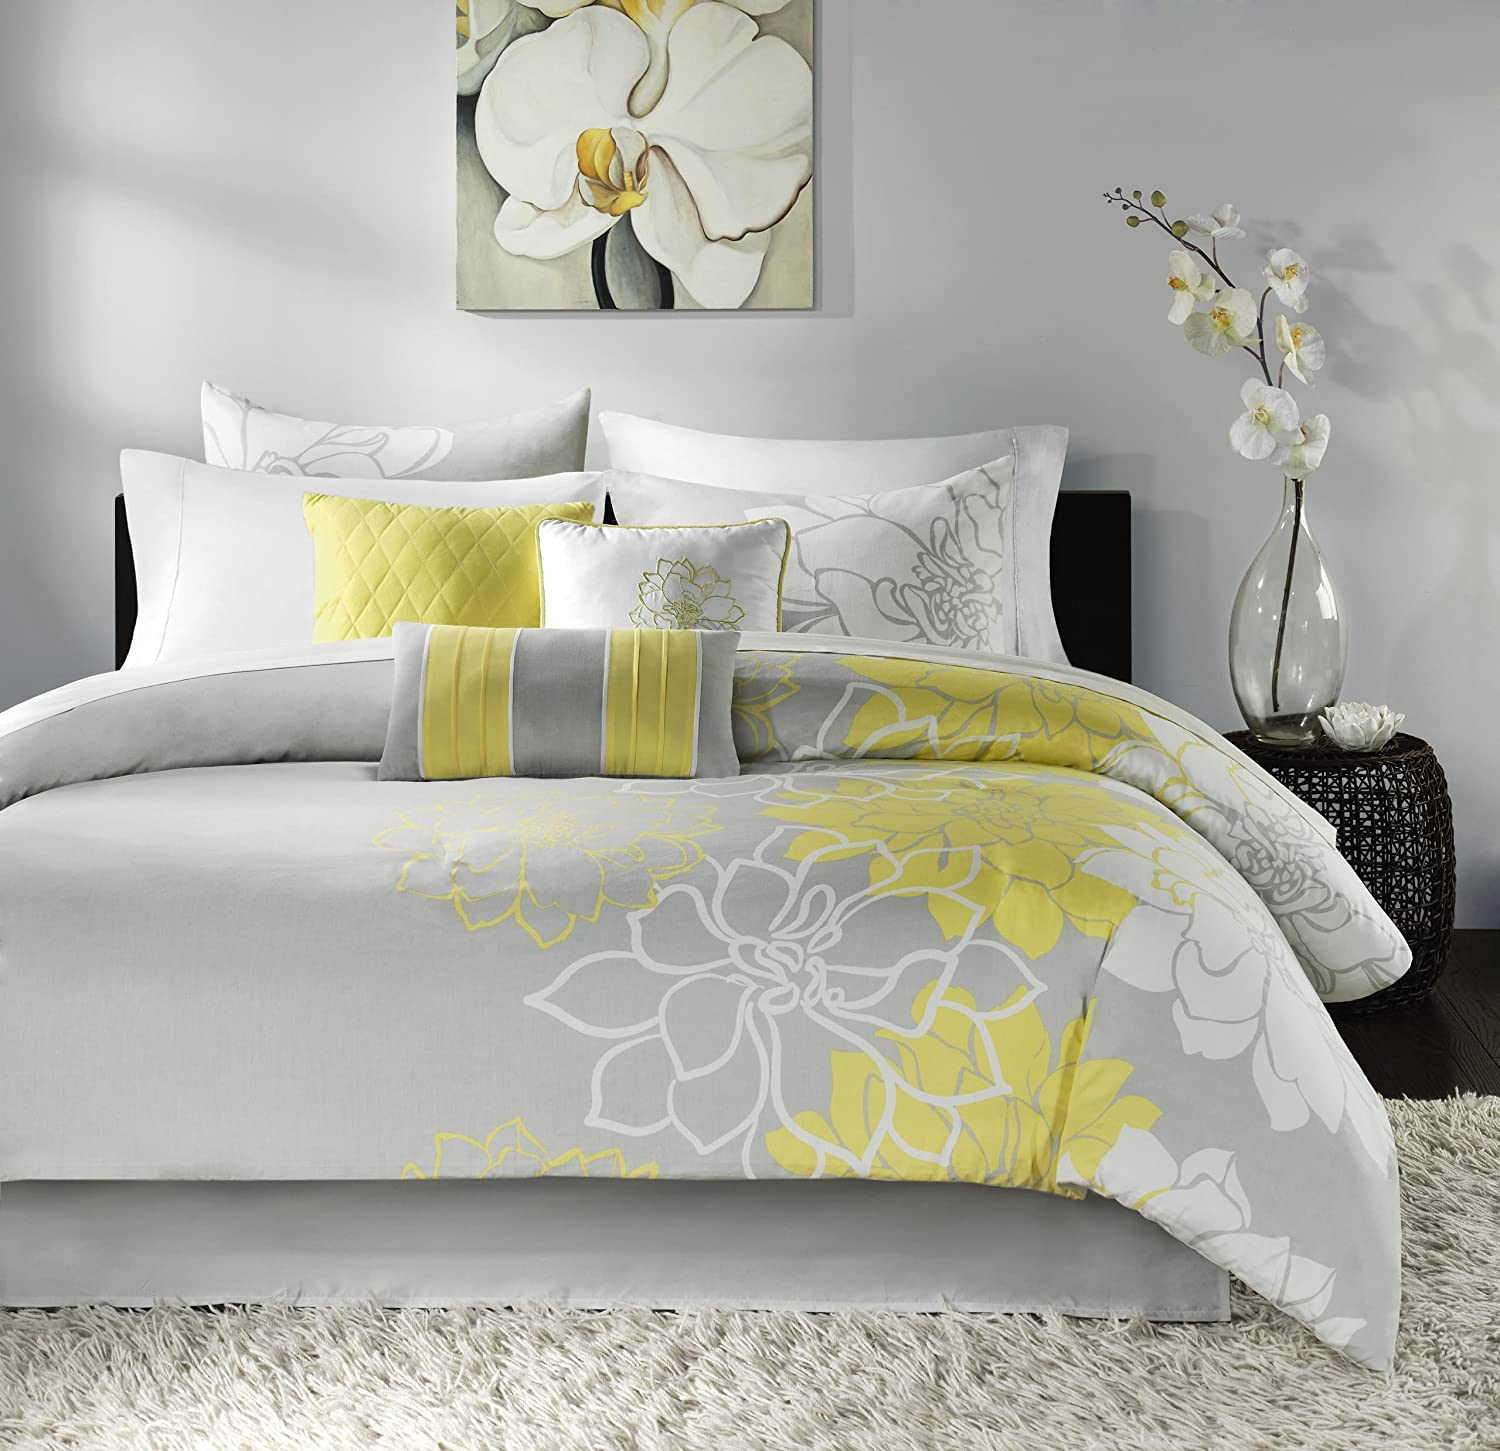 yellow grey white simple modern bedding sets ease bedding with style. Black Bedroom Furniture Sets. Home Design Ideas